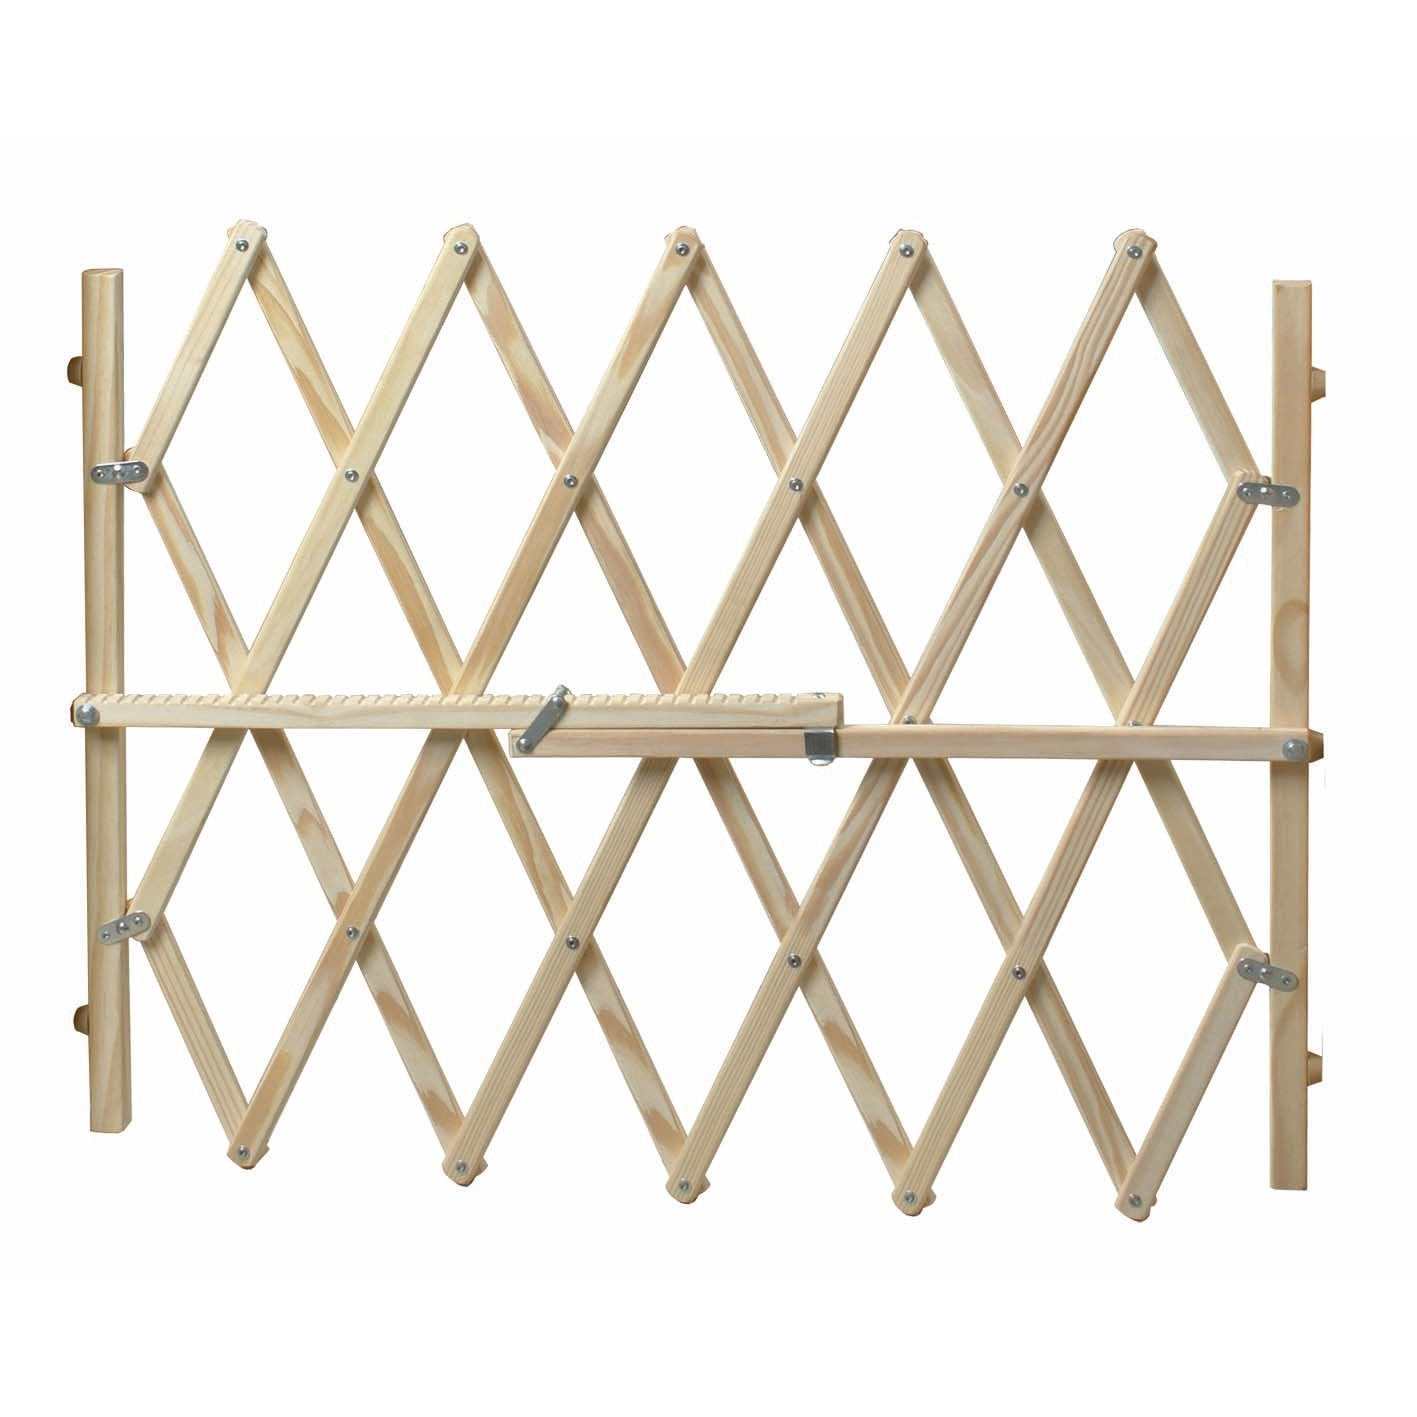 Barri re extensible animaux en bois naturel long min max for Barriere de jardin en bois